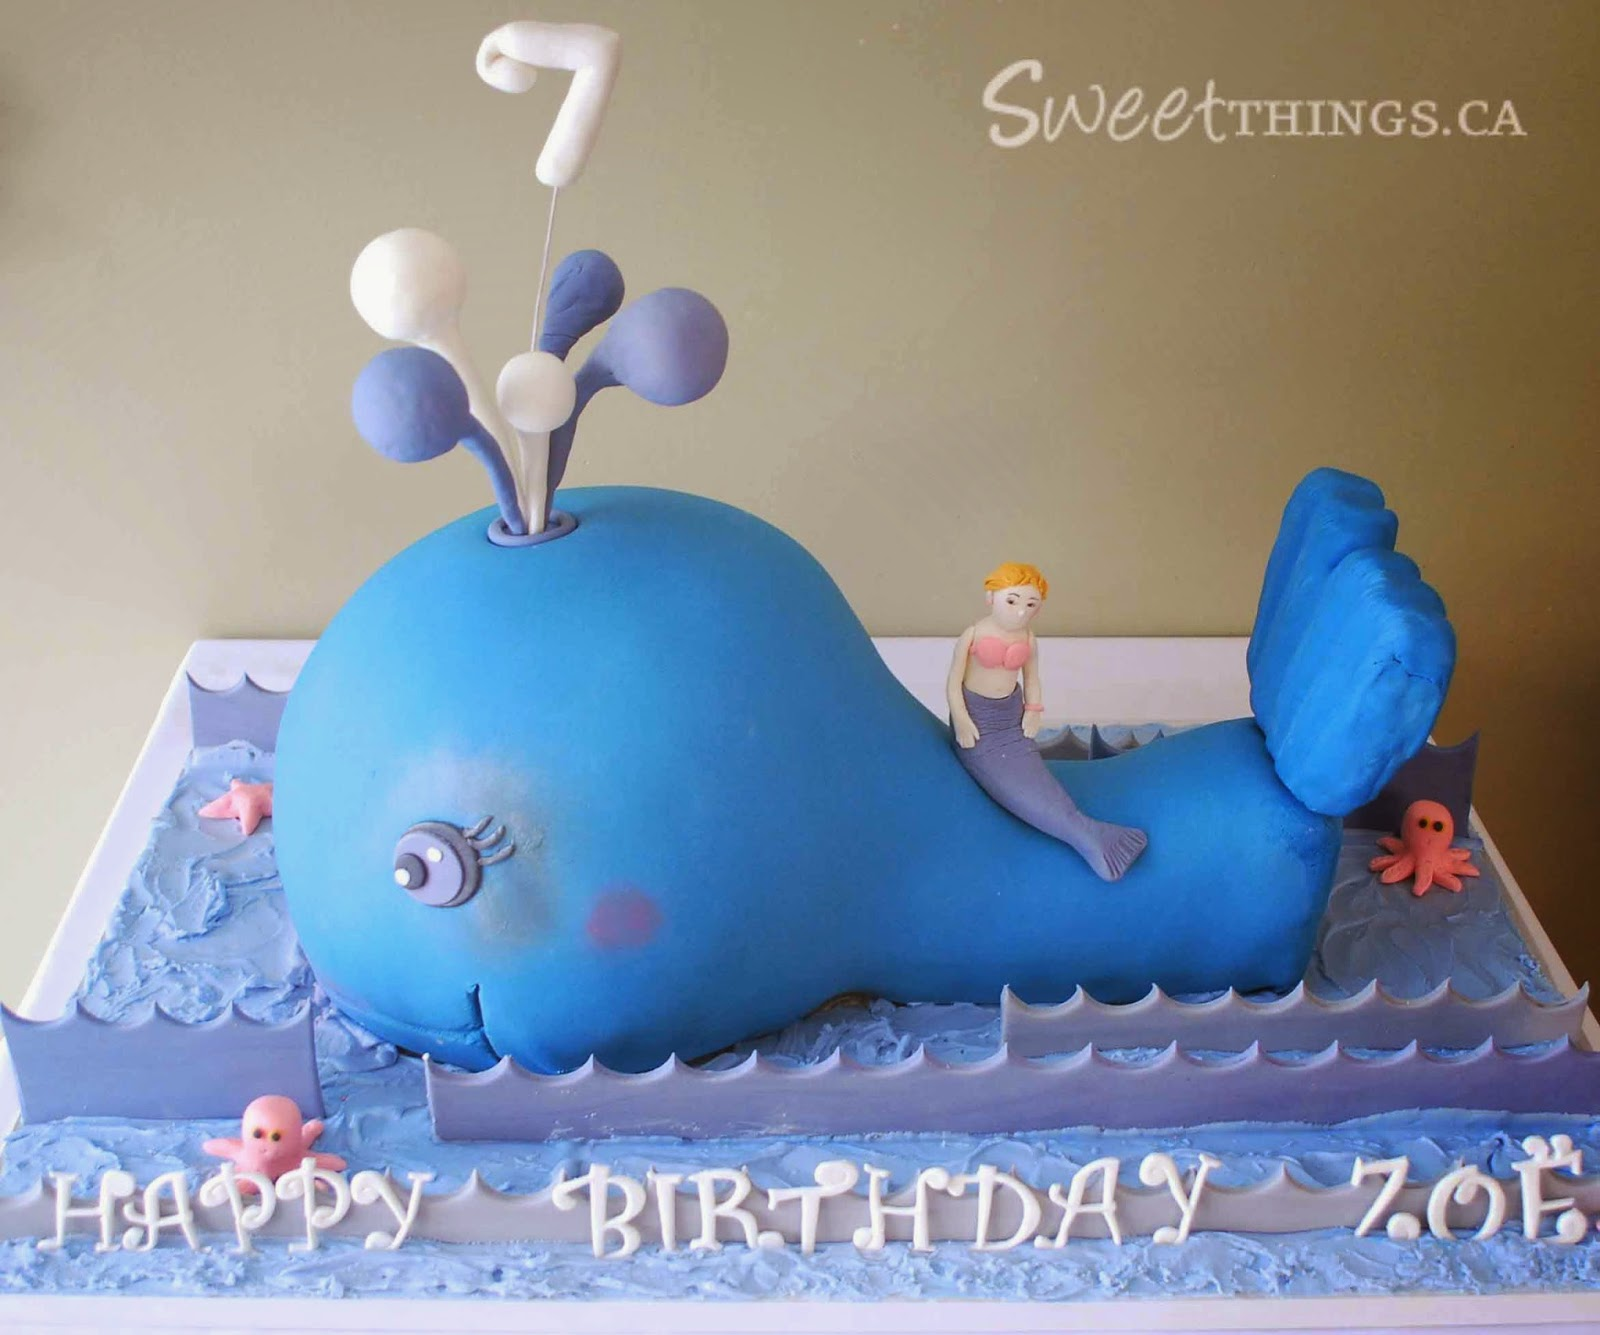 SweetThings Blue Whale Cake